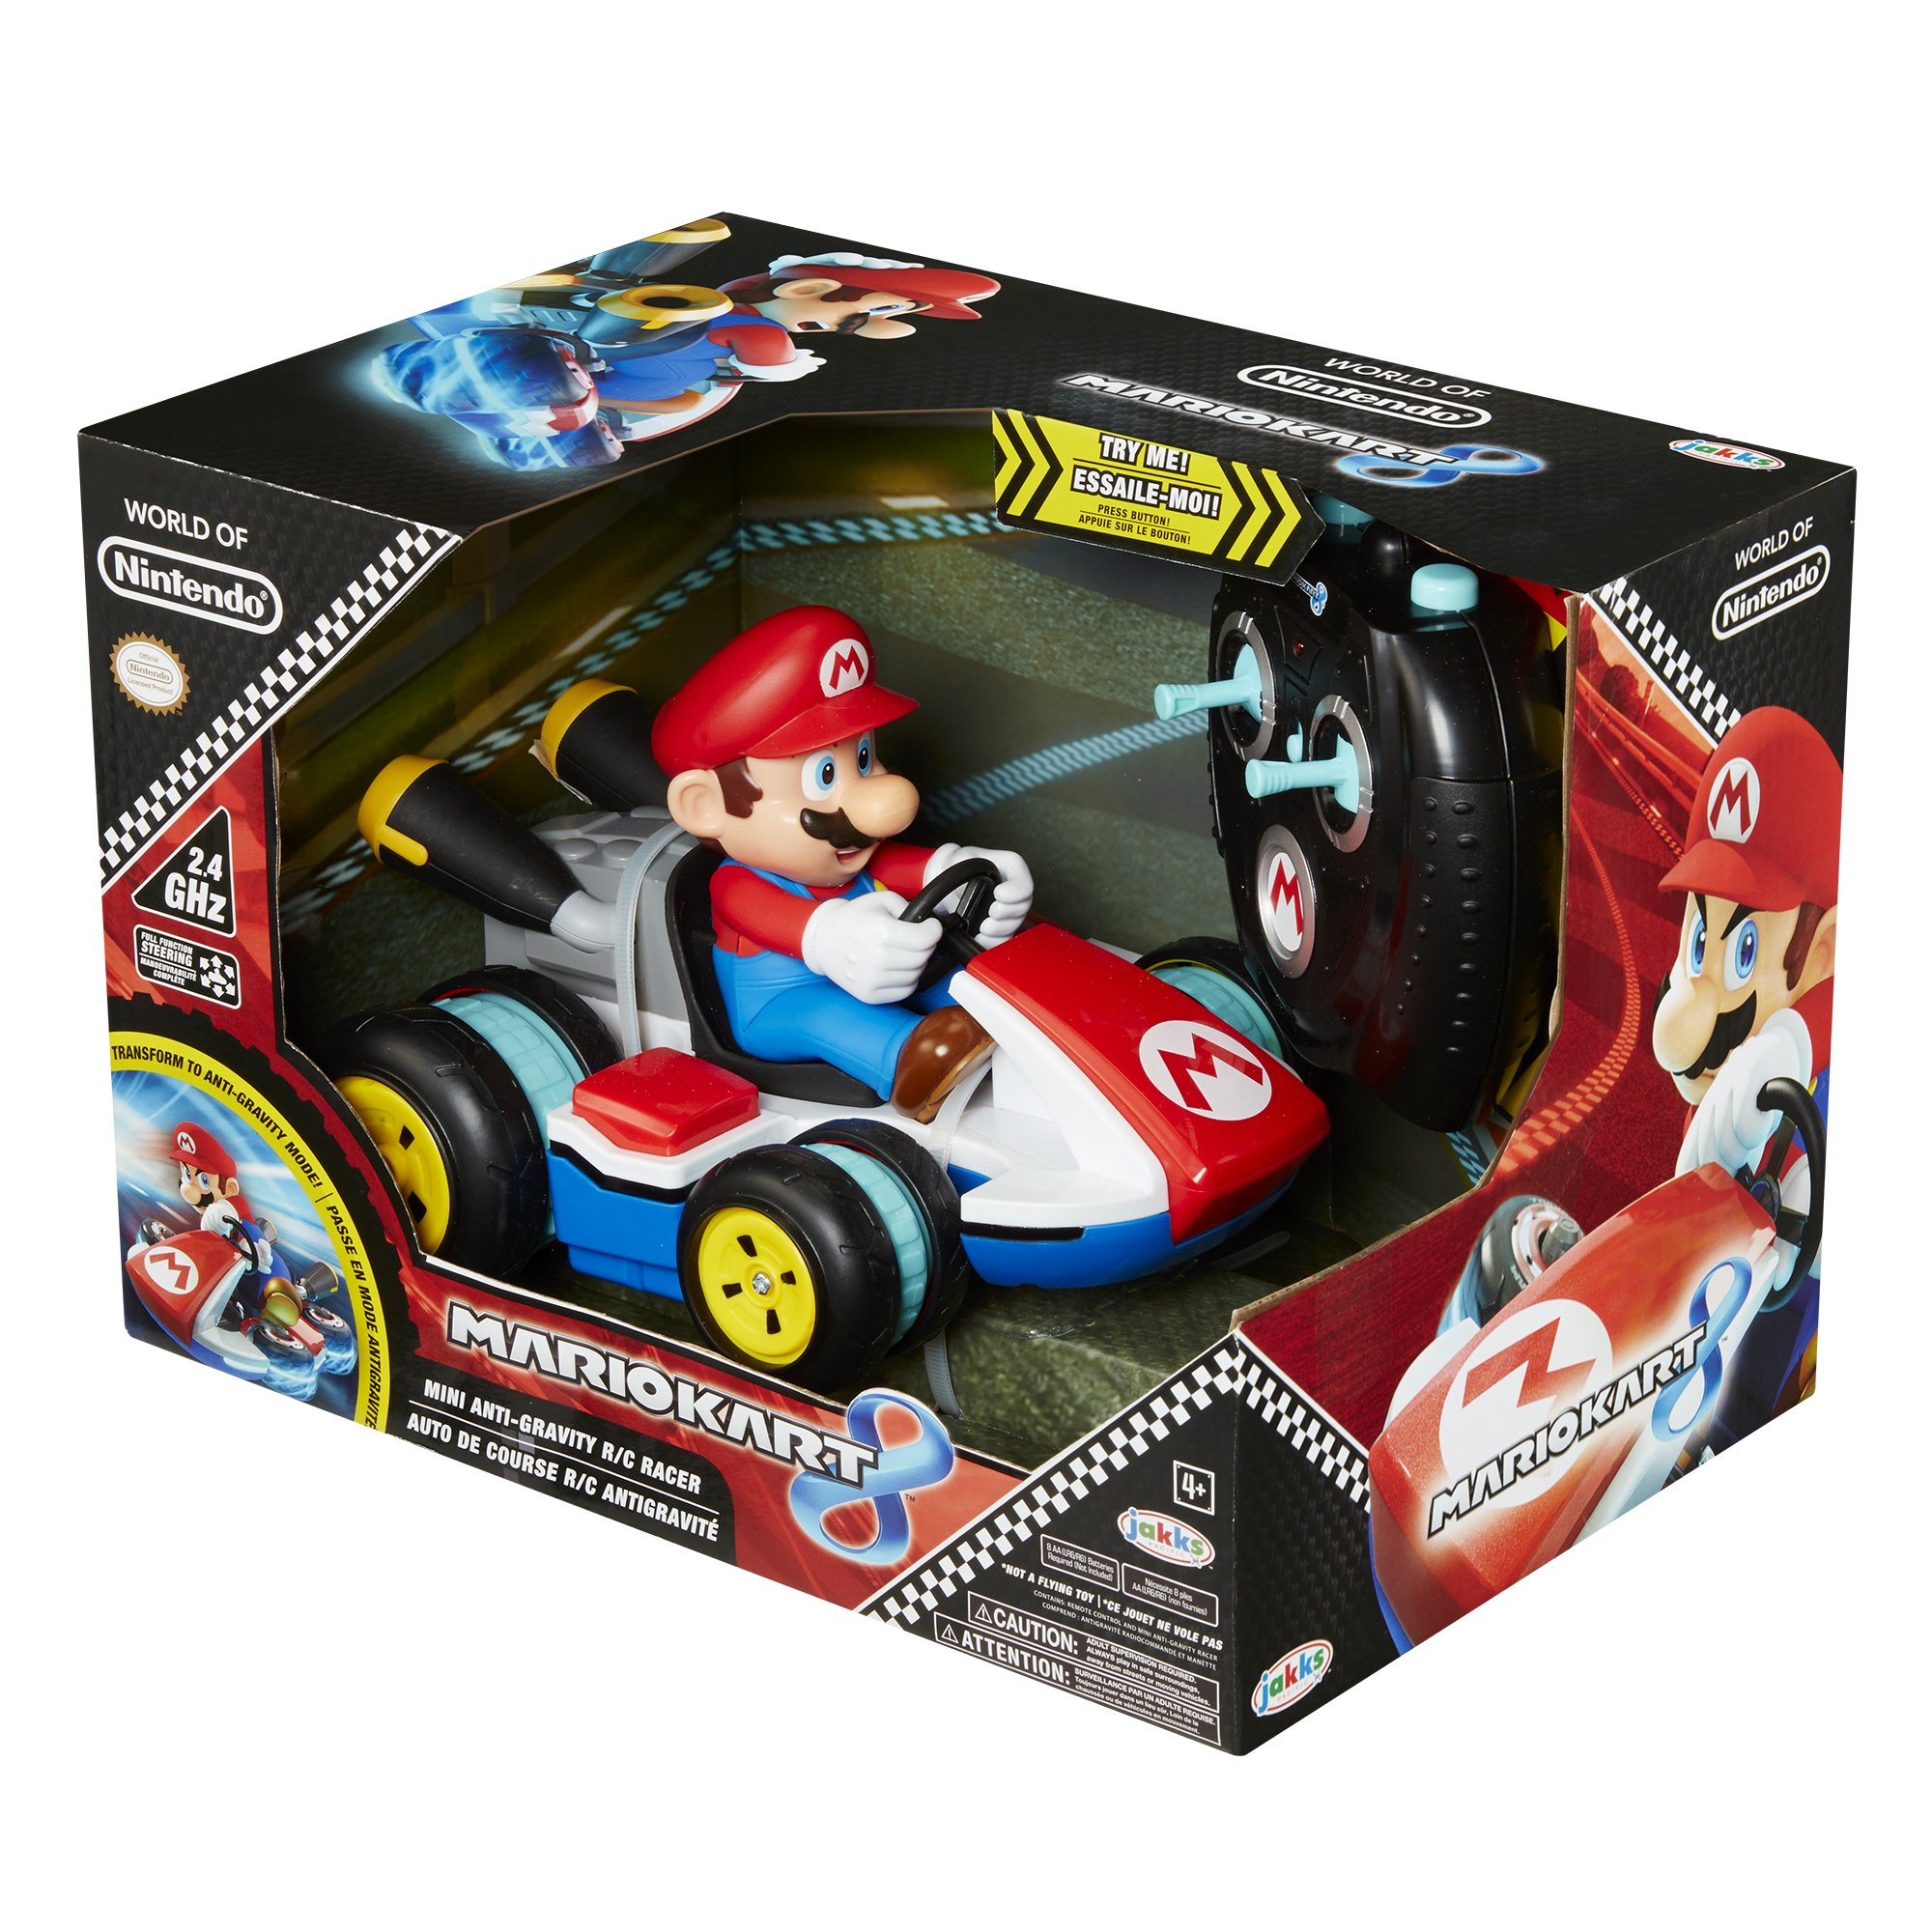 NINTENDO Super Mario Kart 8 Mario Anti-Gravity Mini RC Racer 2.4Ghz by Nintendo (Image #8)